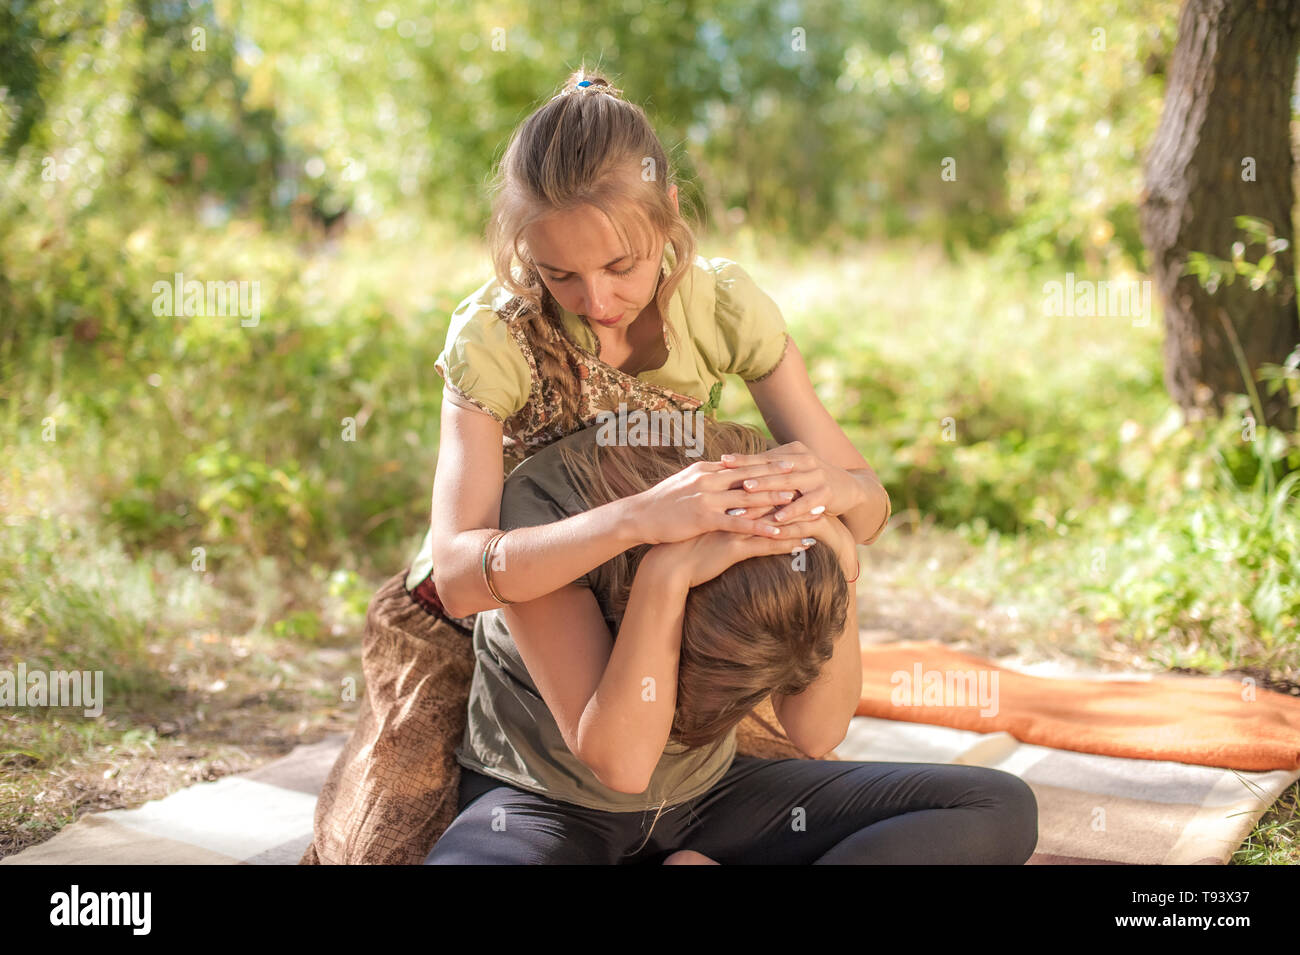 Experienced masseuse thuroughly massages a girl on the grass. - Stock Image